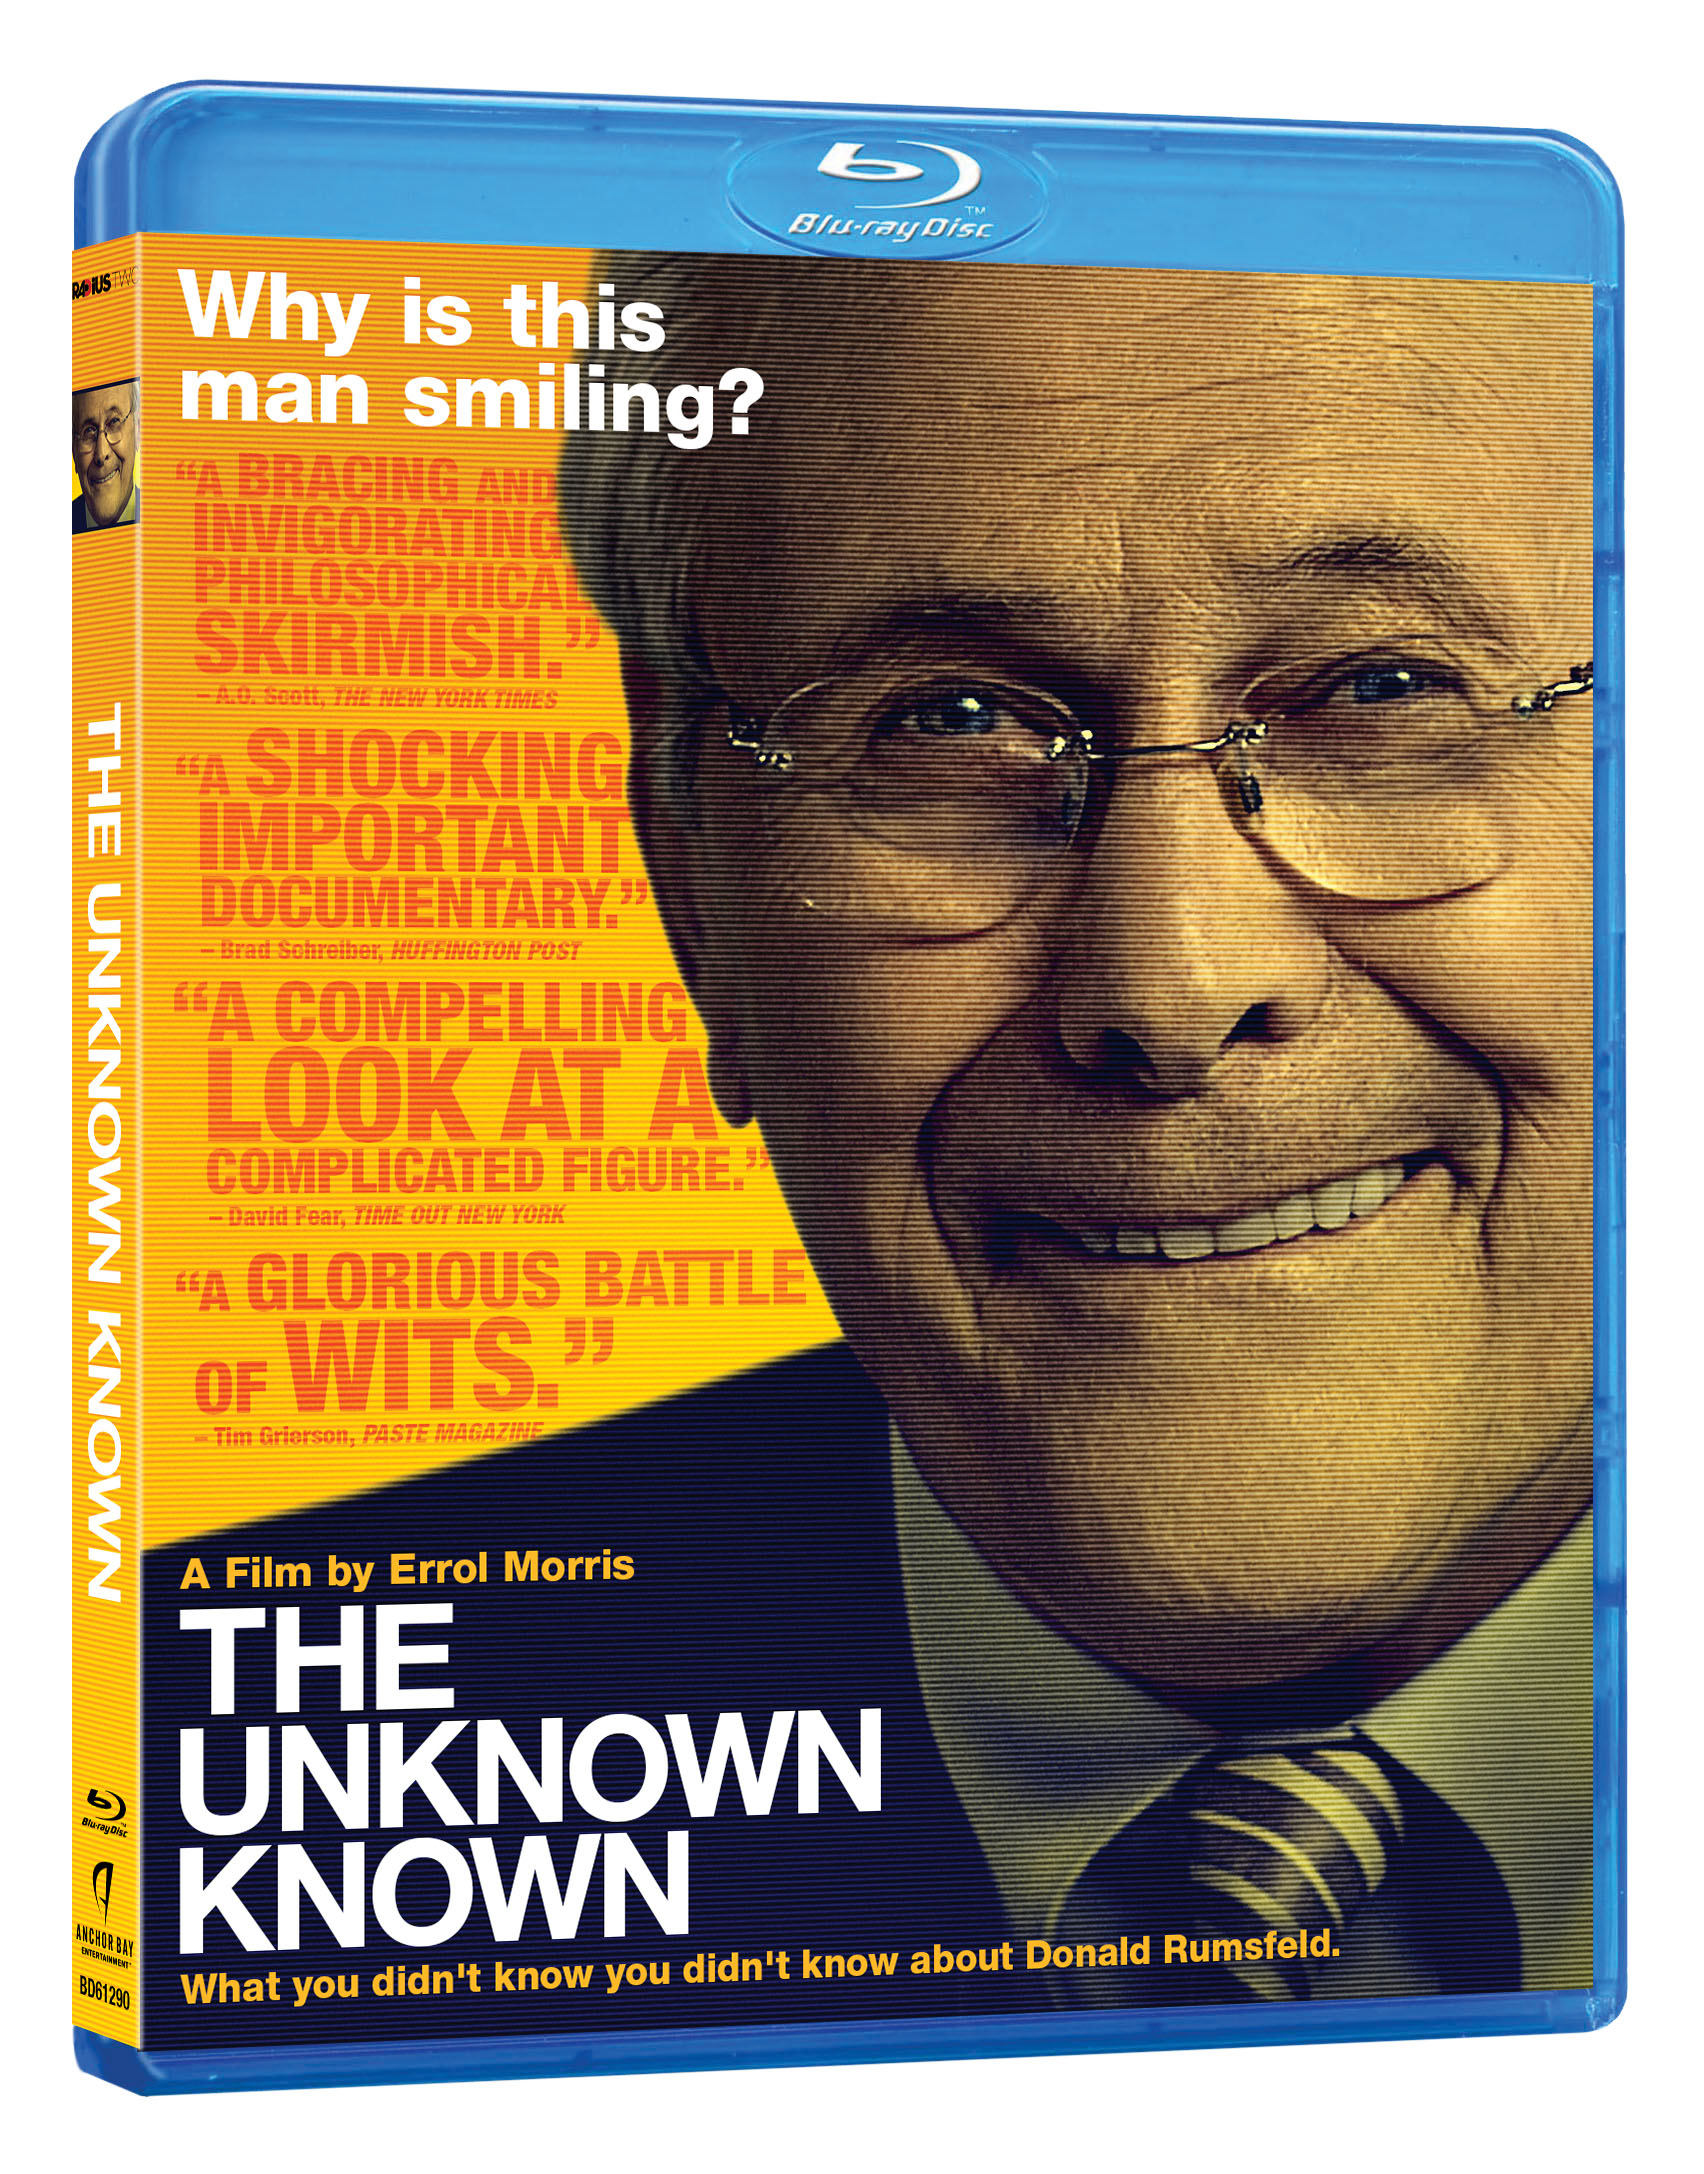 The Unknown Known Blu-ray Review